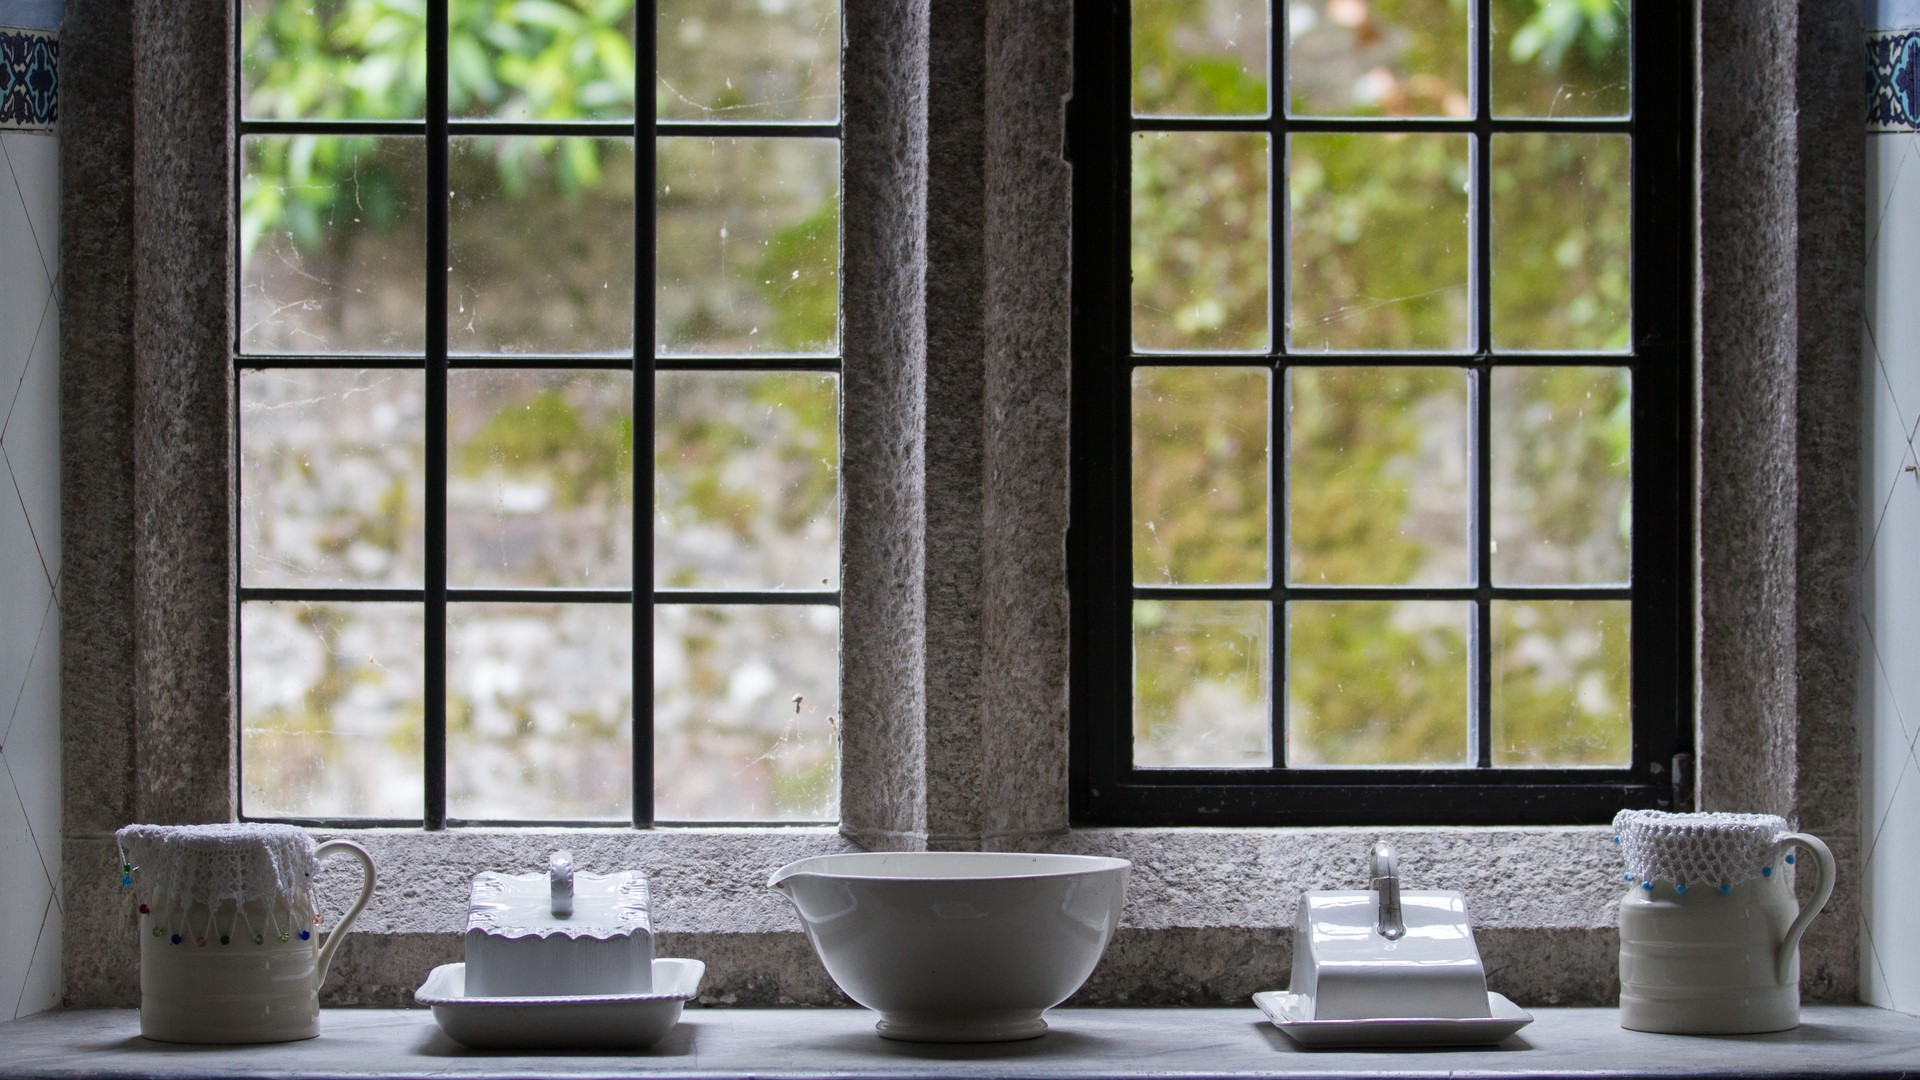 A display of French cottage kitchenware to dress up a black steel frame windowsill.